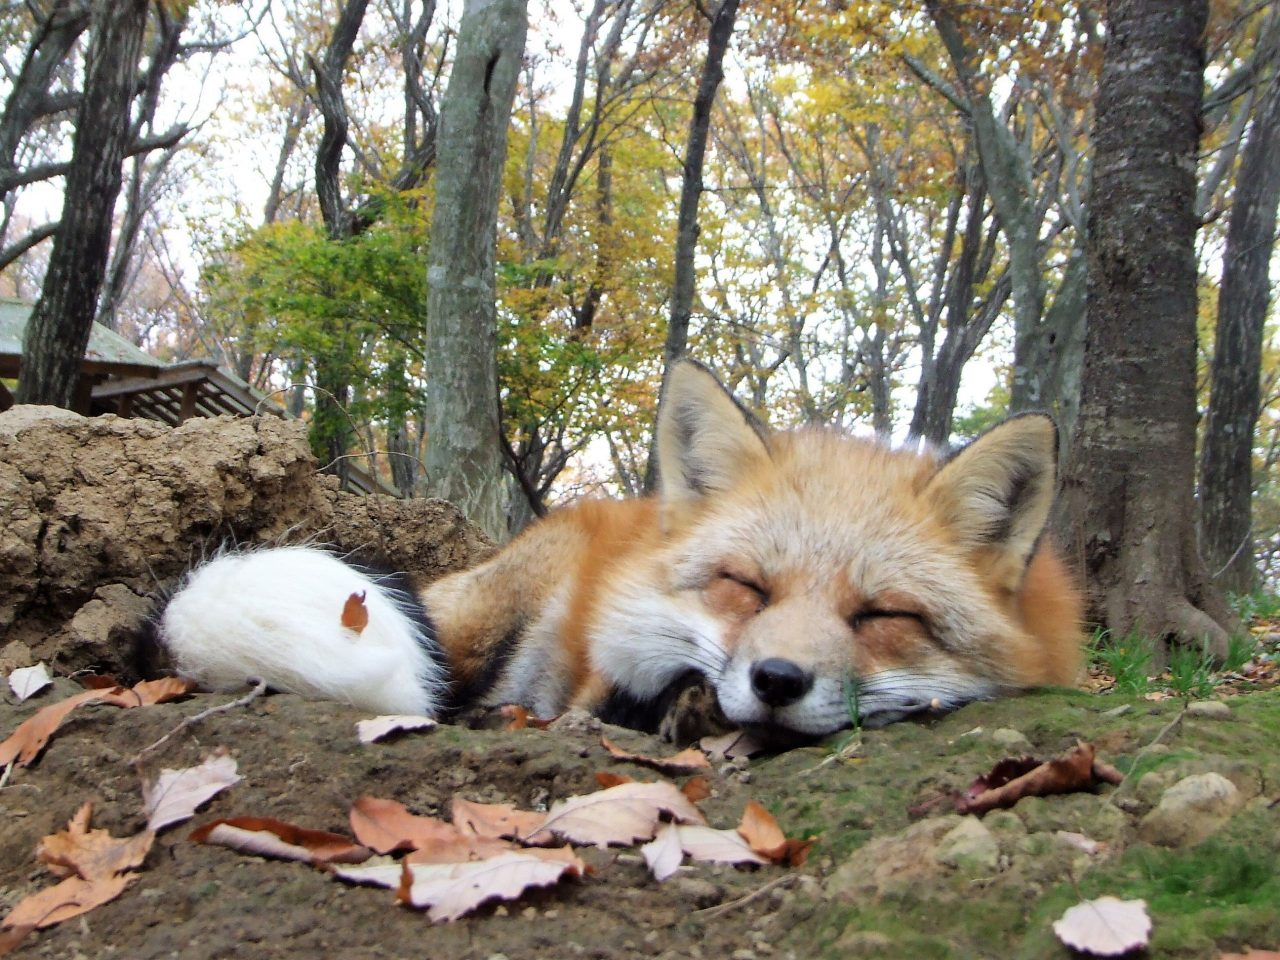 """Cuddle their fluffy foxes! A rare zoo with more than 100 foxes where you can see and cuddle them. """"Miyagi Zao Fox Village"""""""